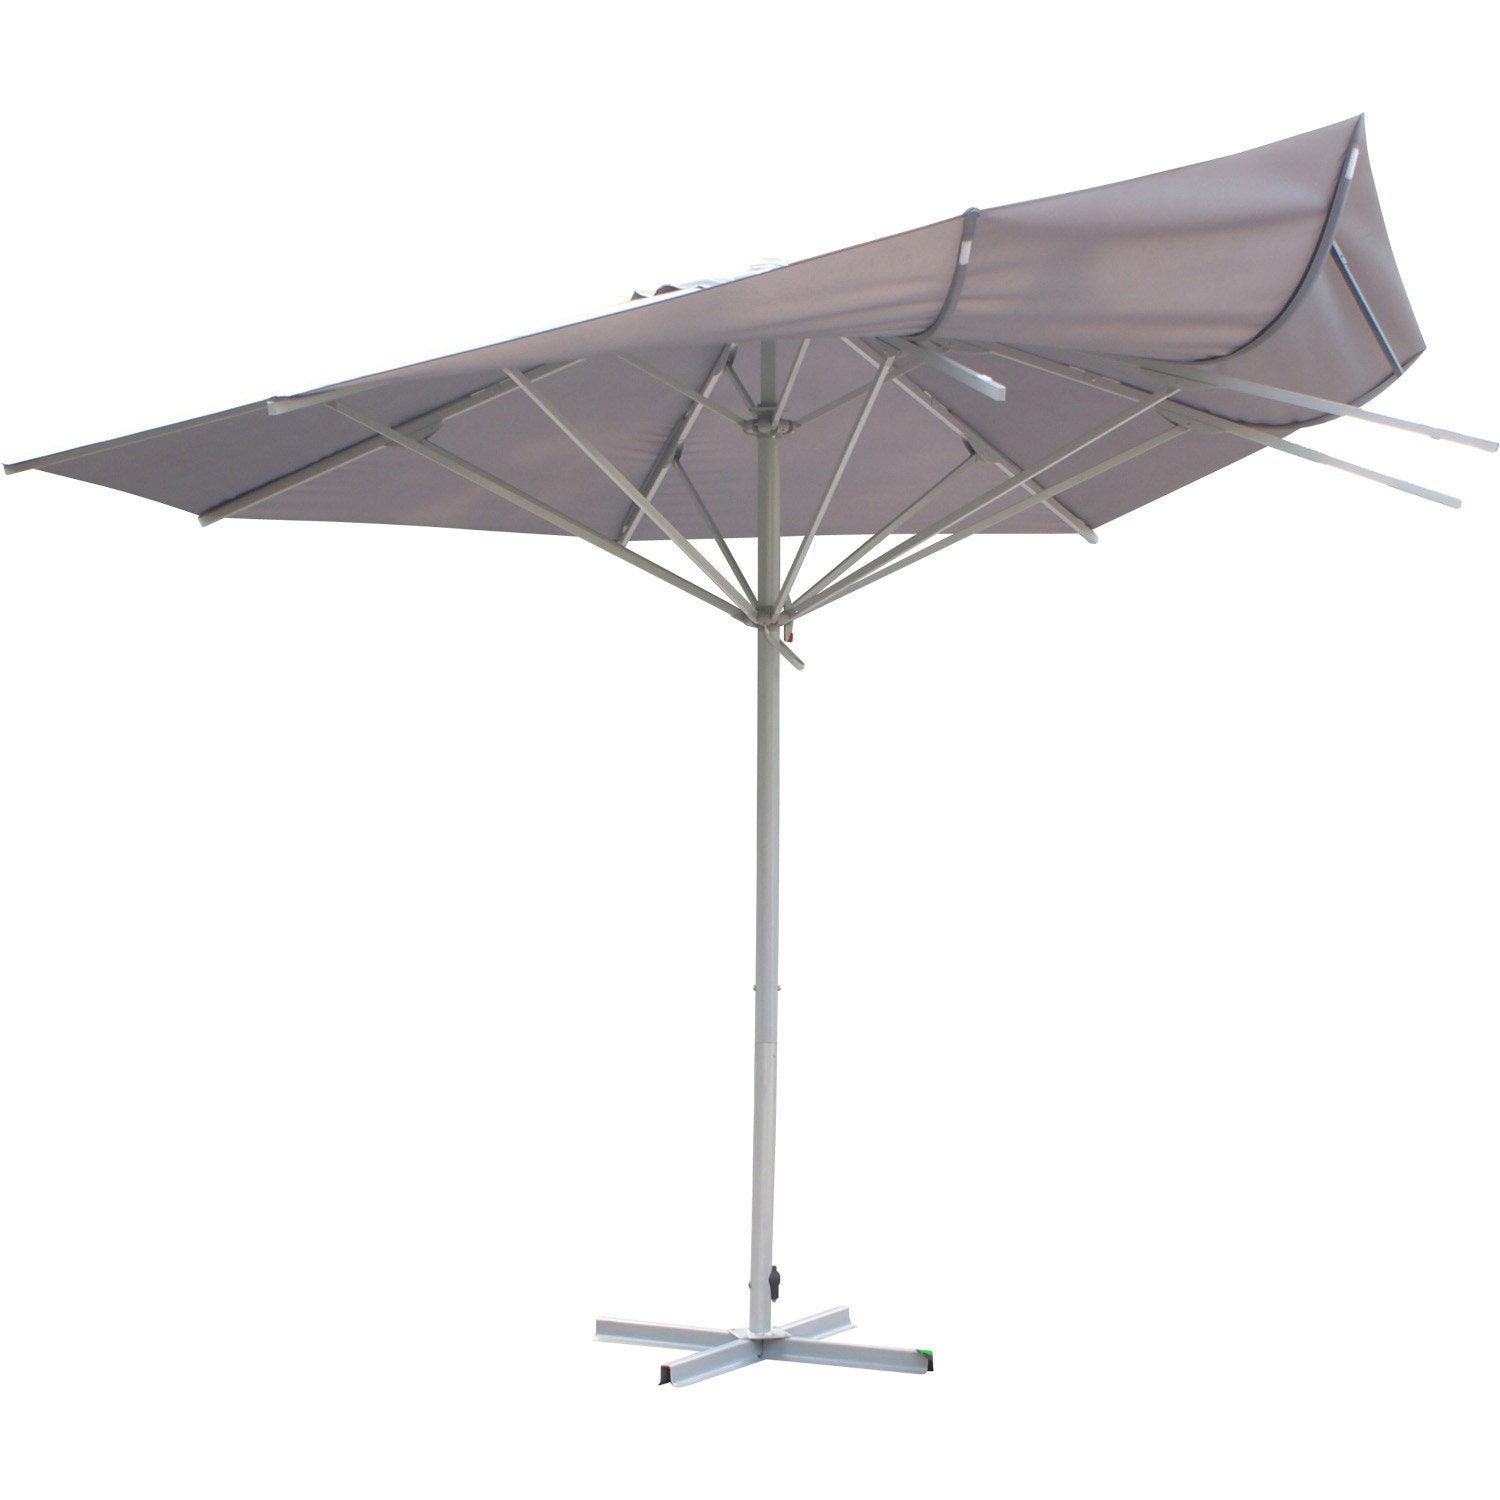 pied parasol leroy merlin photos de conception de maison agaroth